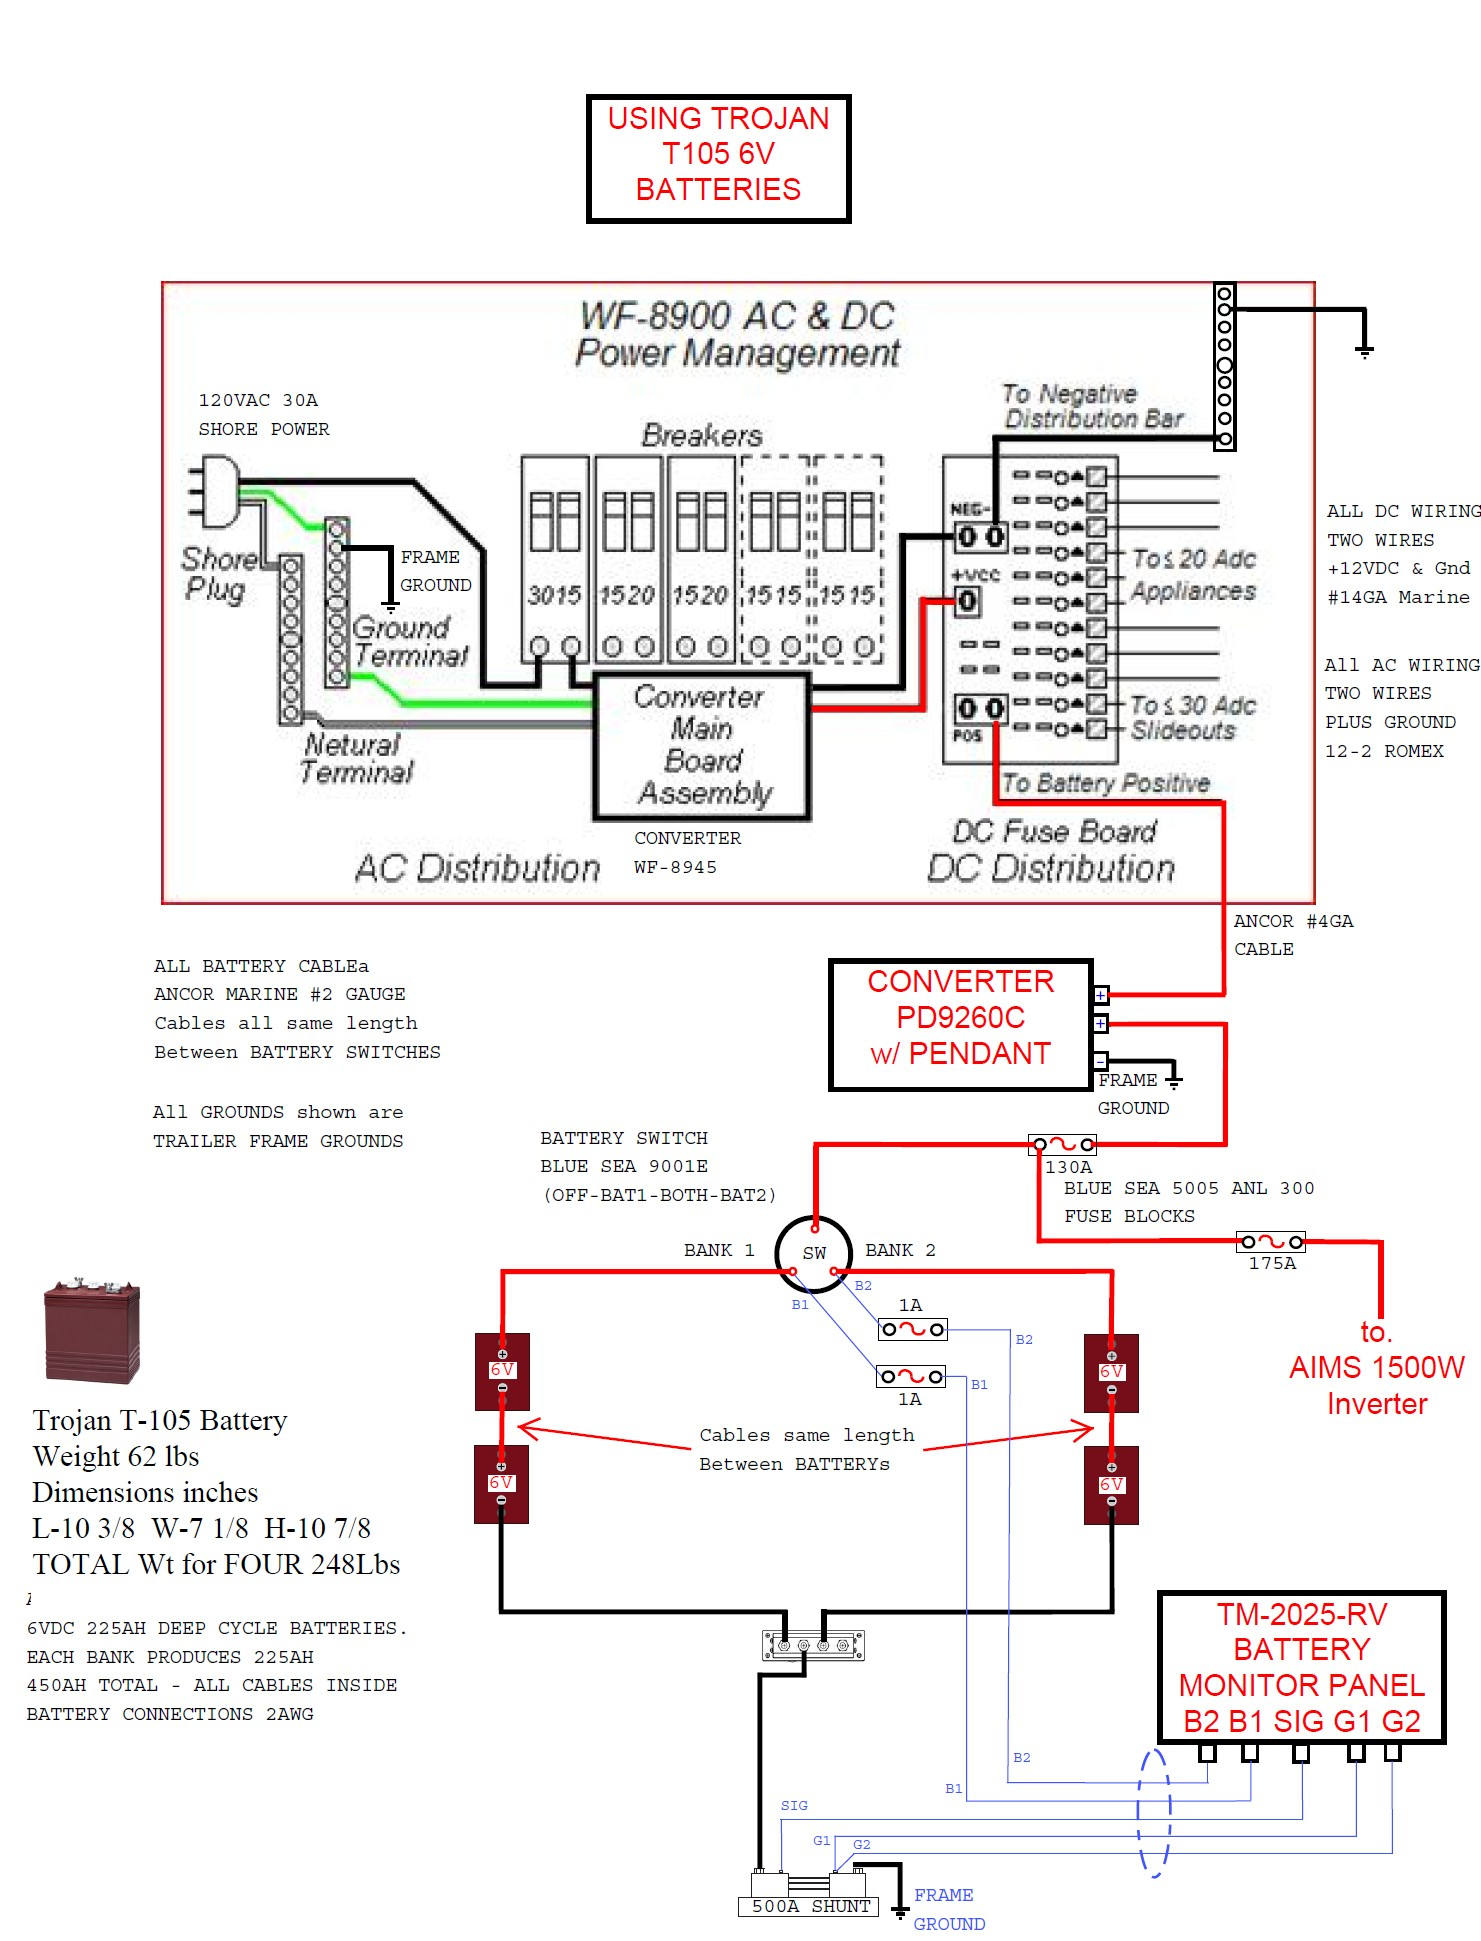 jayco wiring diagram 2001 jayco wiring diagram jayco eagle wiring diagram sample